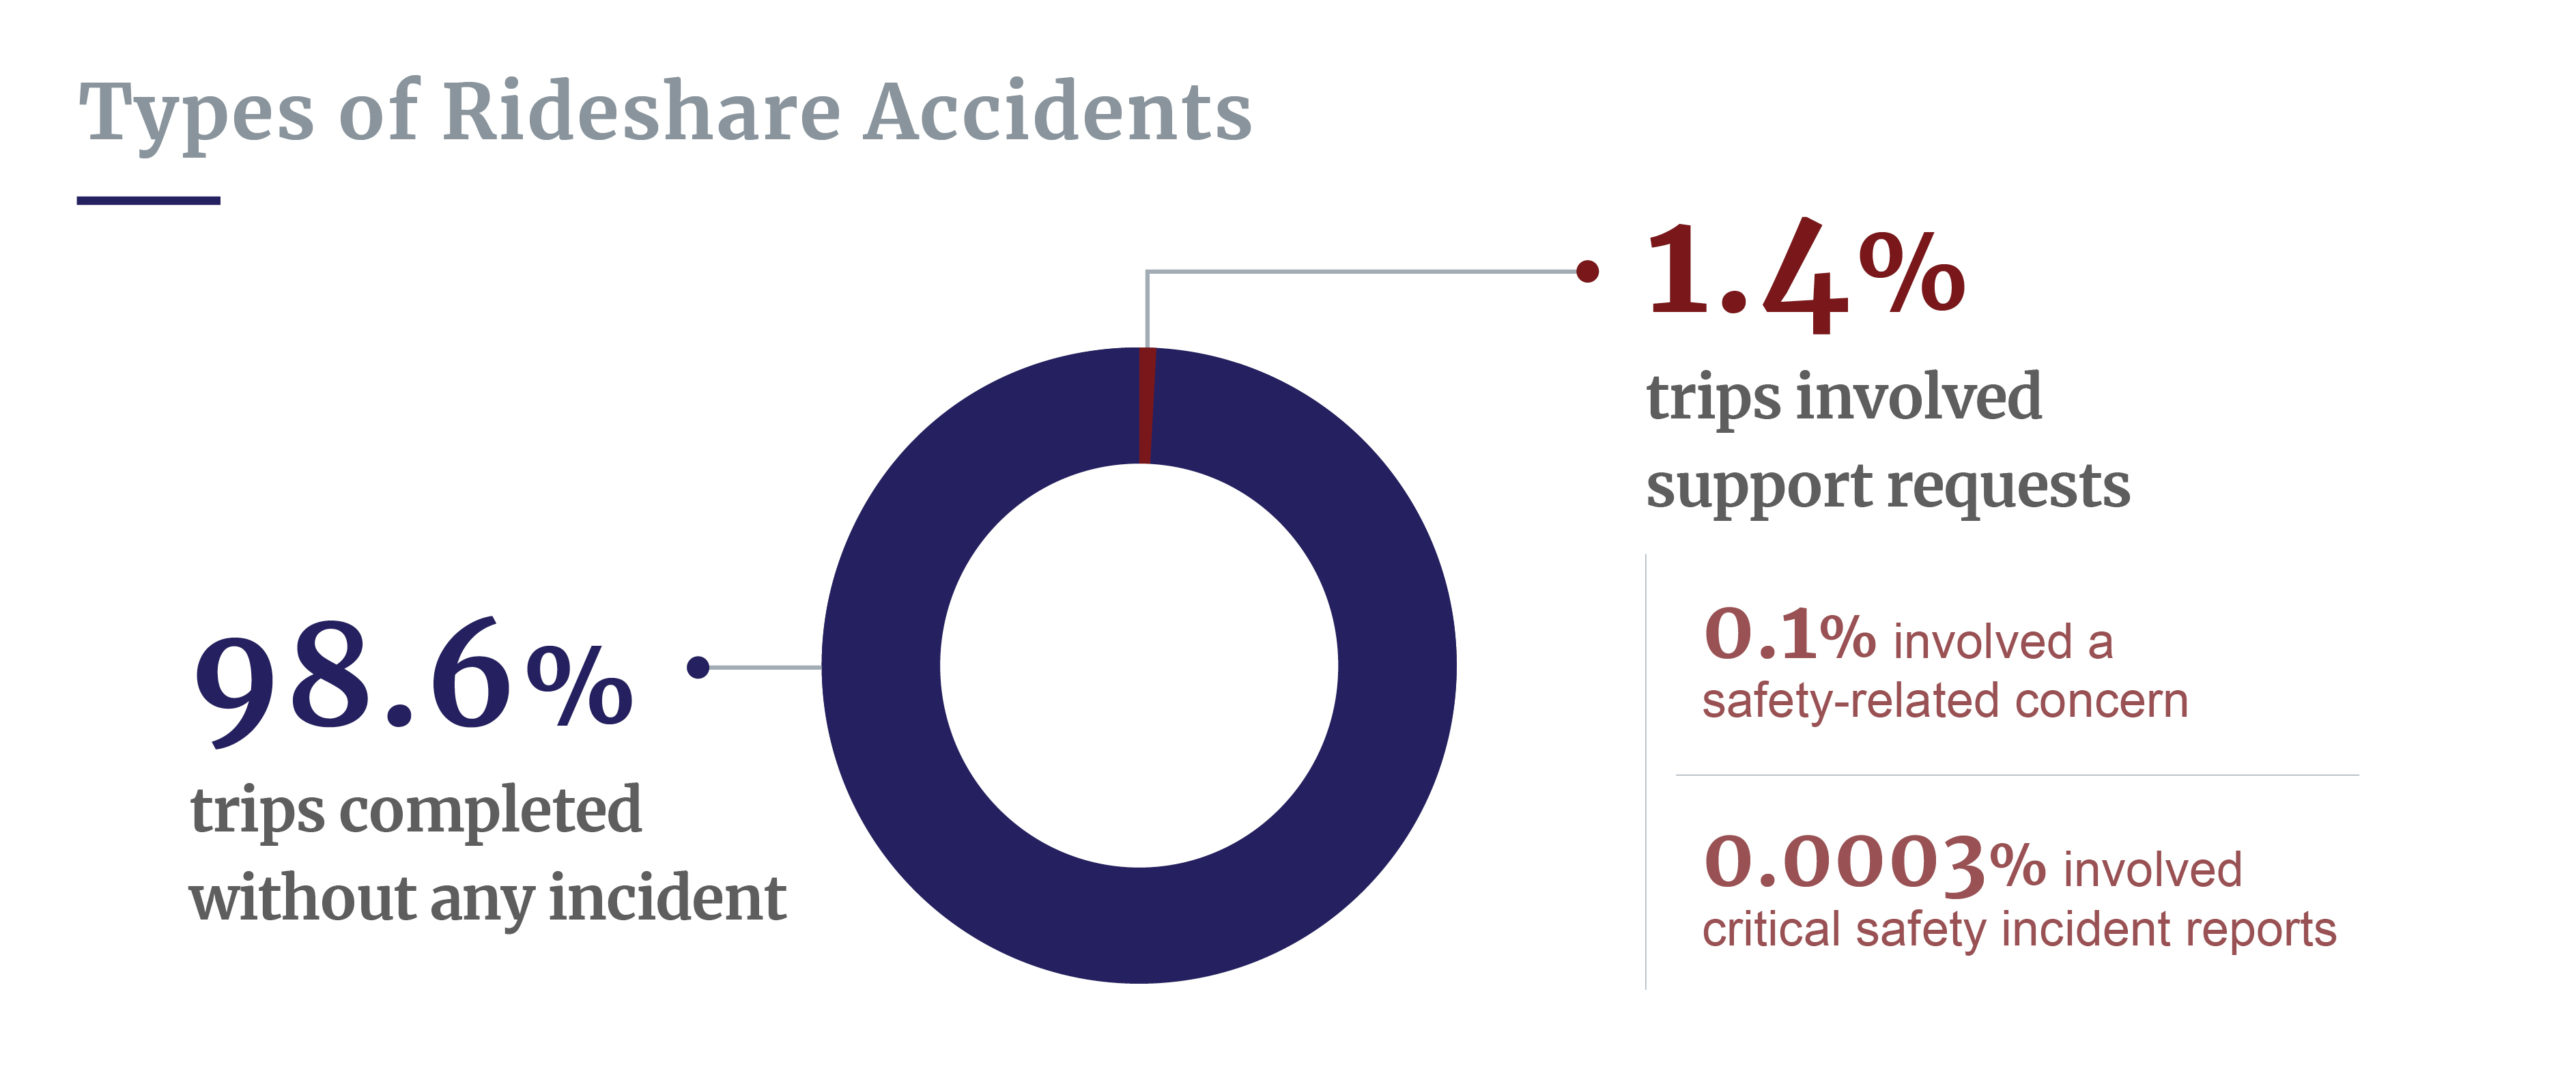 Types of rideshare accidents